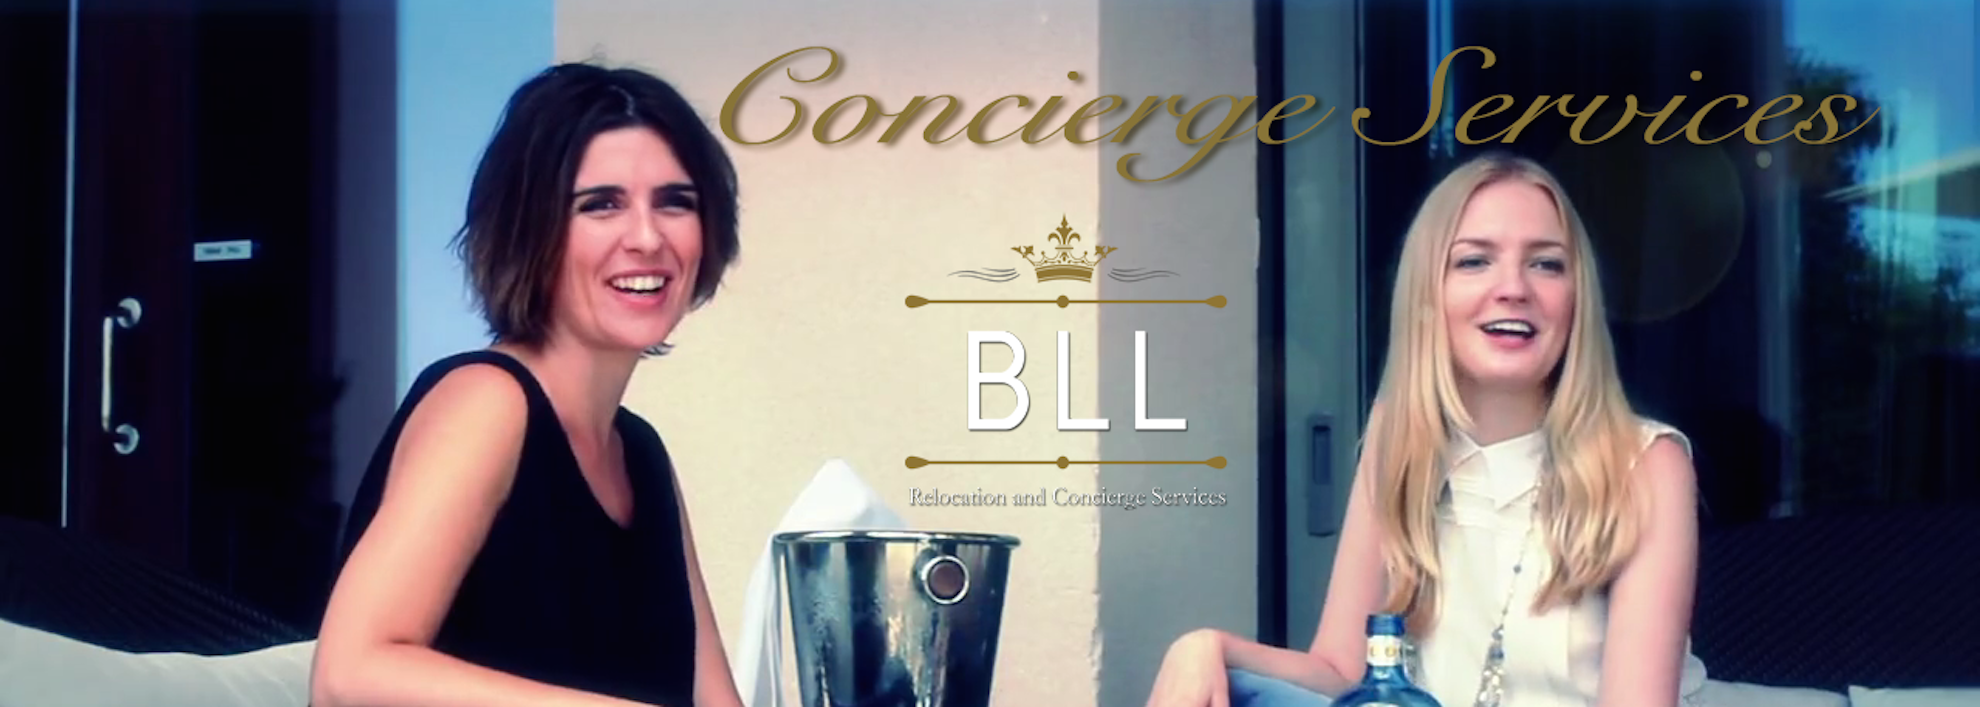 Concierge Services in Barcelona